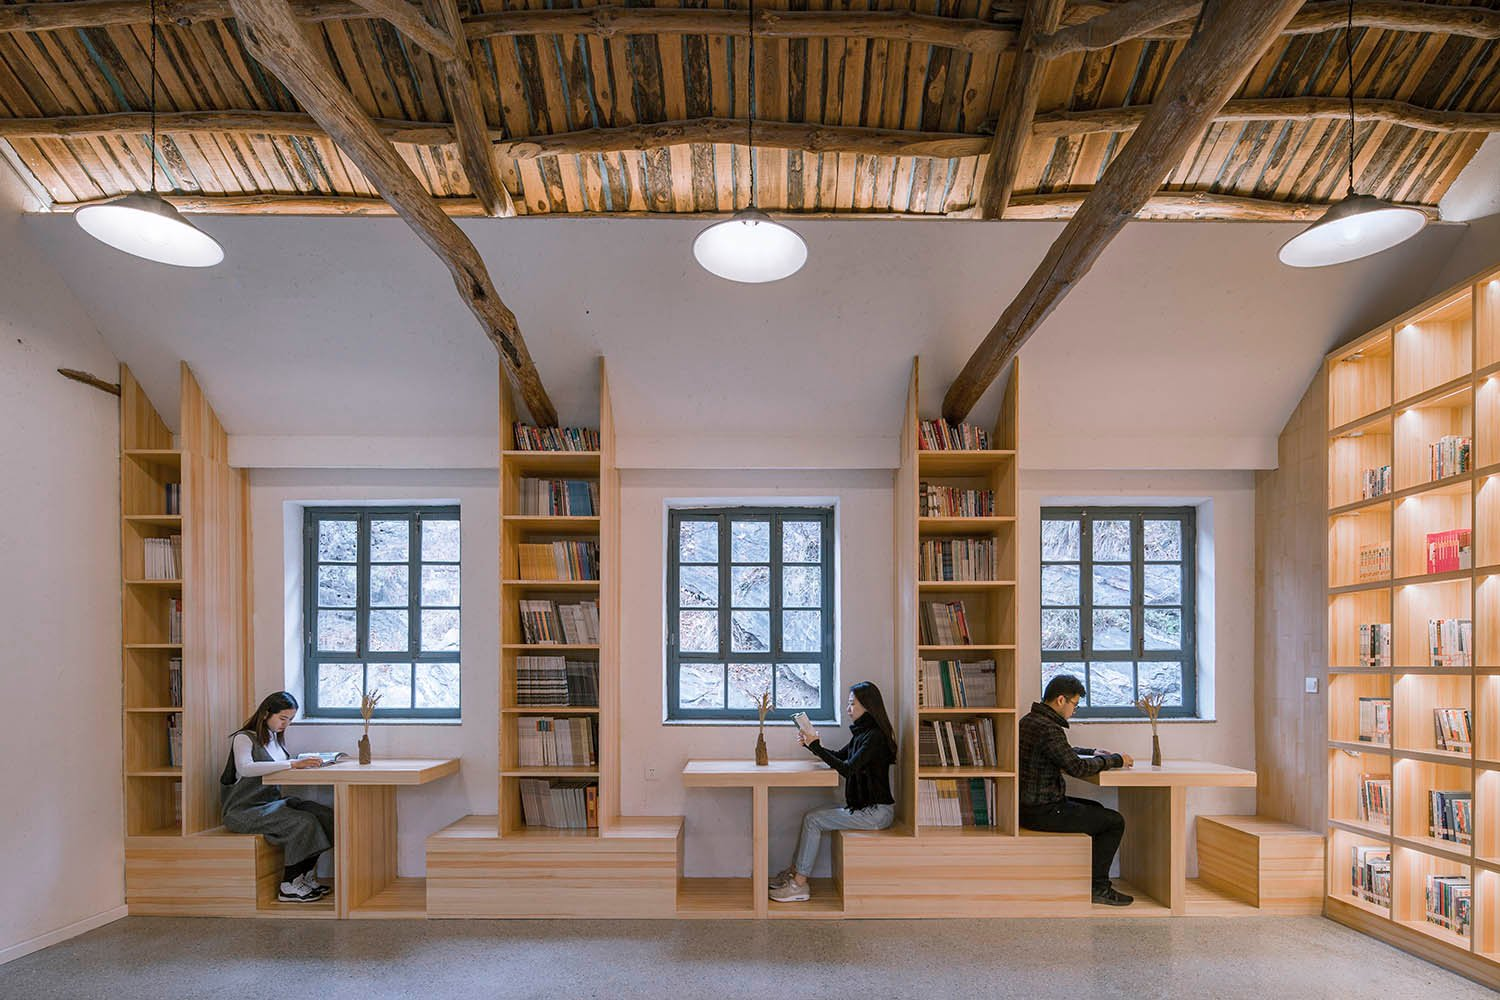 (12-Bay Art School)The reading area has bookshelves and exhibition tables Jin Weiqi